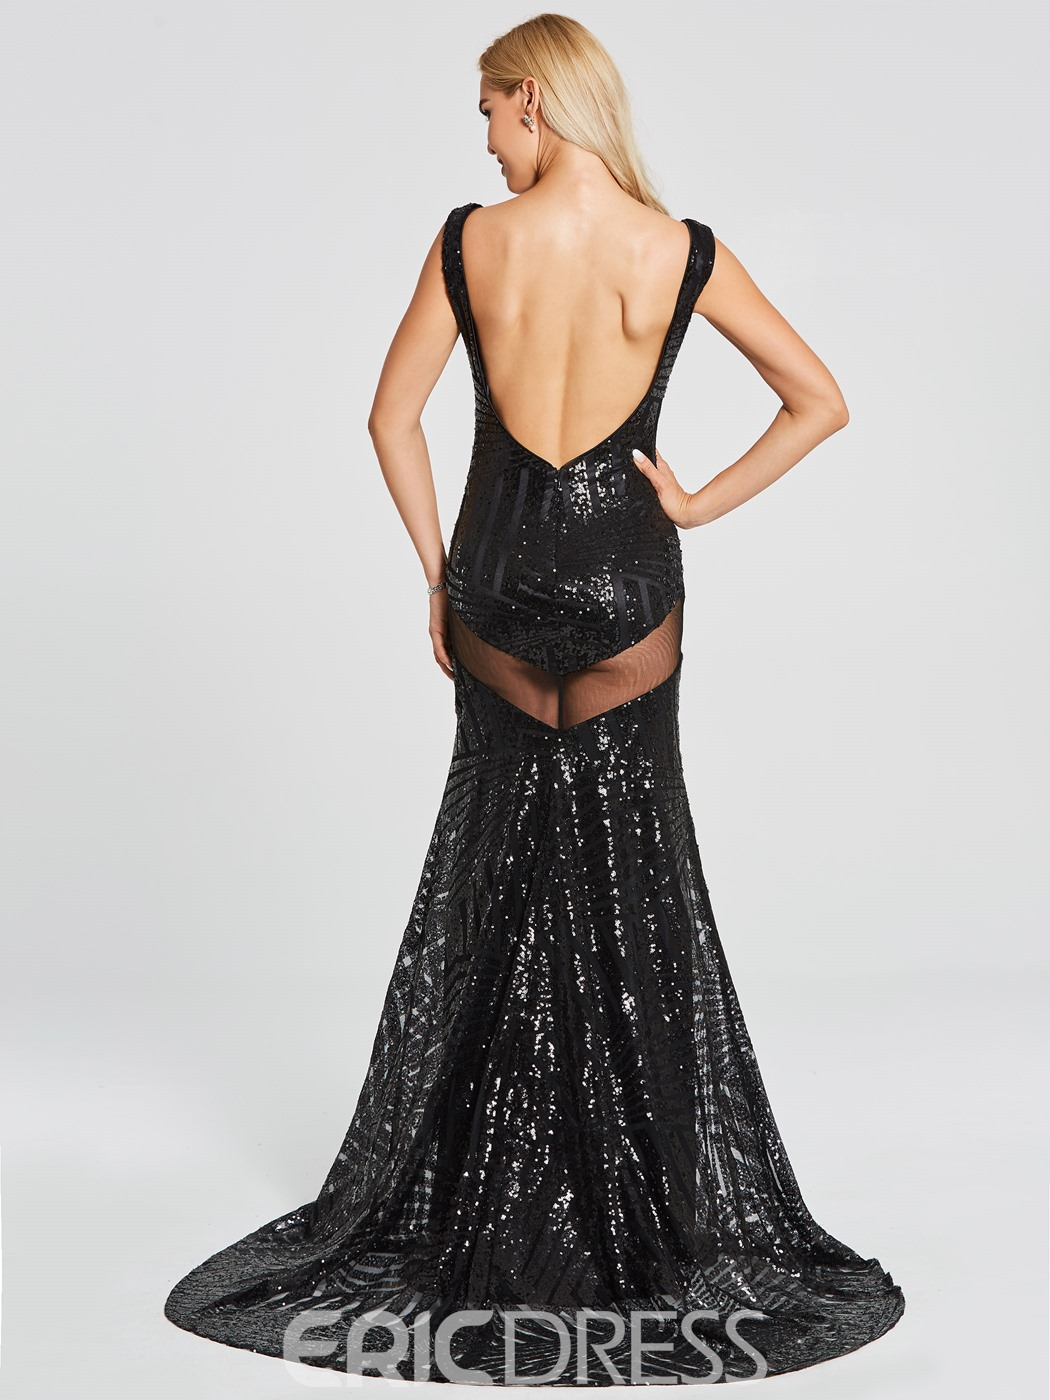 Ericdress Sexy V Neck Sequins Backless Mermaid Evening Dress